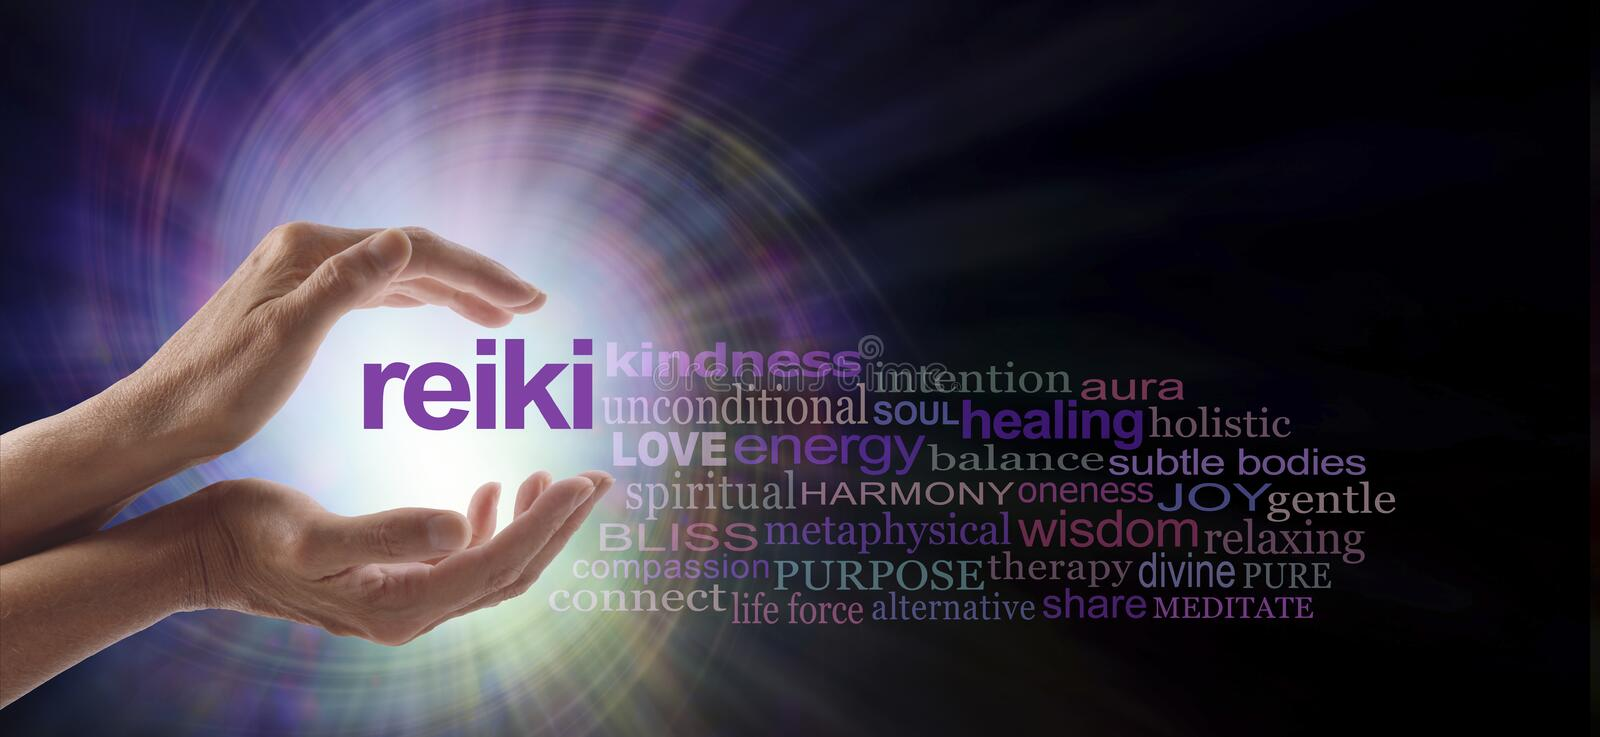 Reiki Vortex Healing Word Cloud. Female hands cupped around the word REIKI with a relevant word cloud on a spiraling bright light vortex background and copy